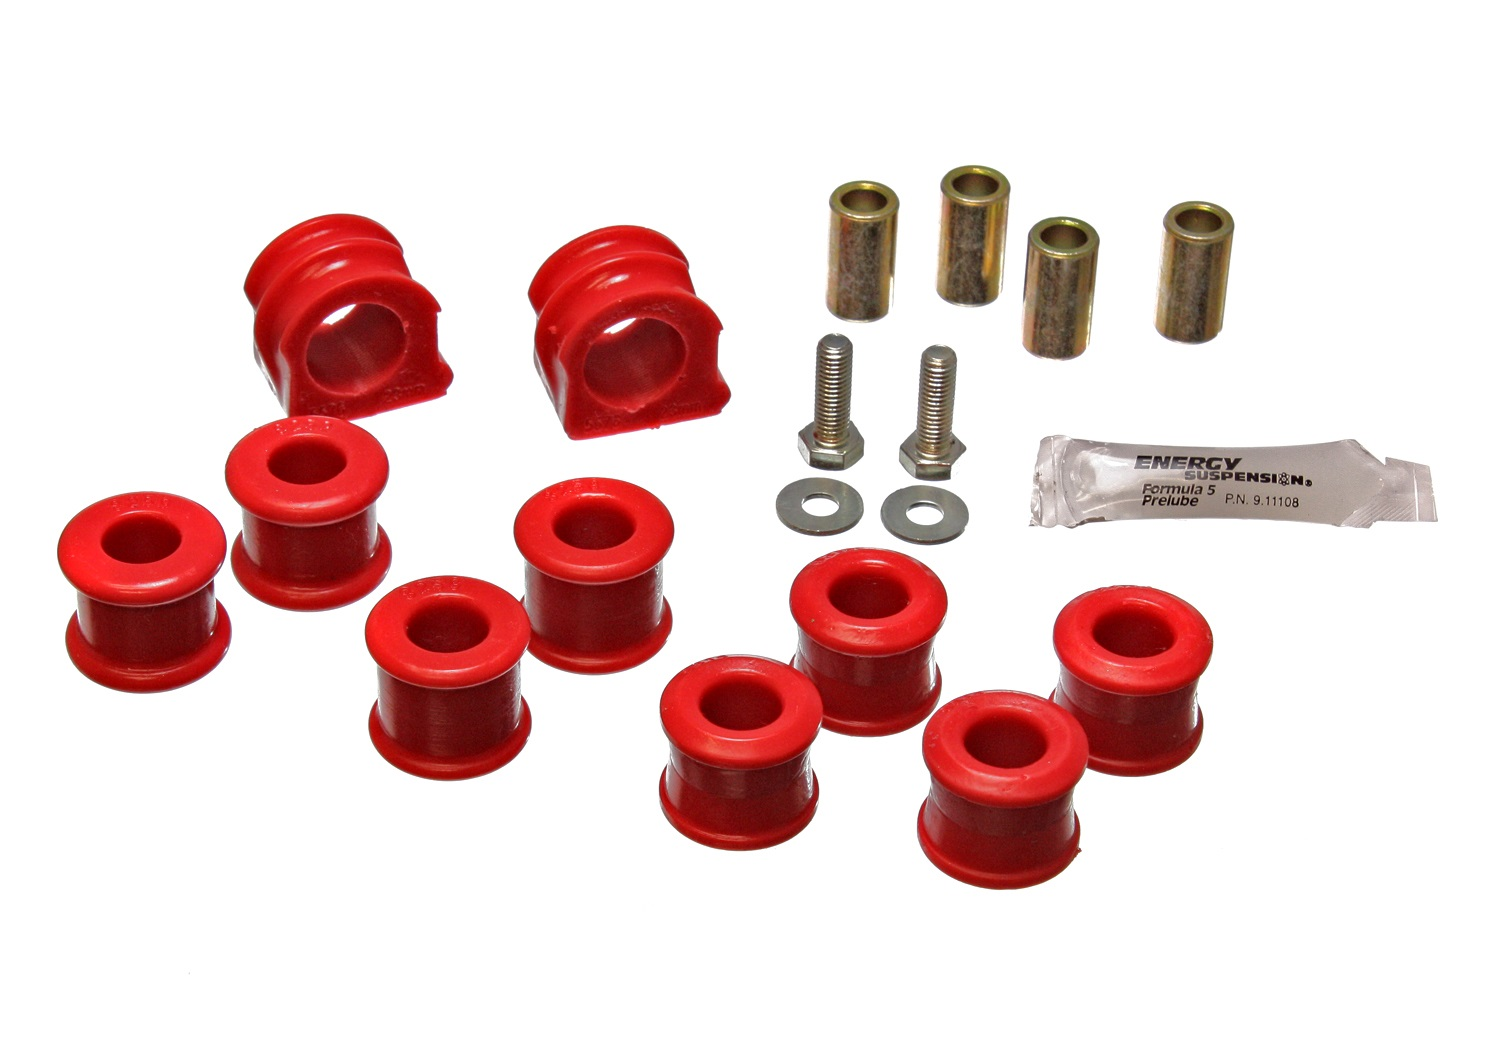 Energy Suspension 15.5106R Sway Bar Bushing Set Fits 98-06 Beetle Golf Jetta